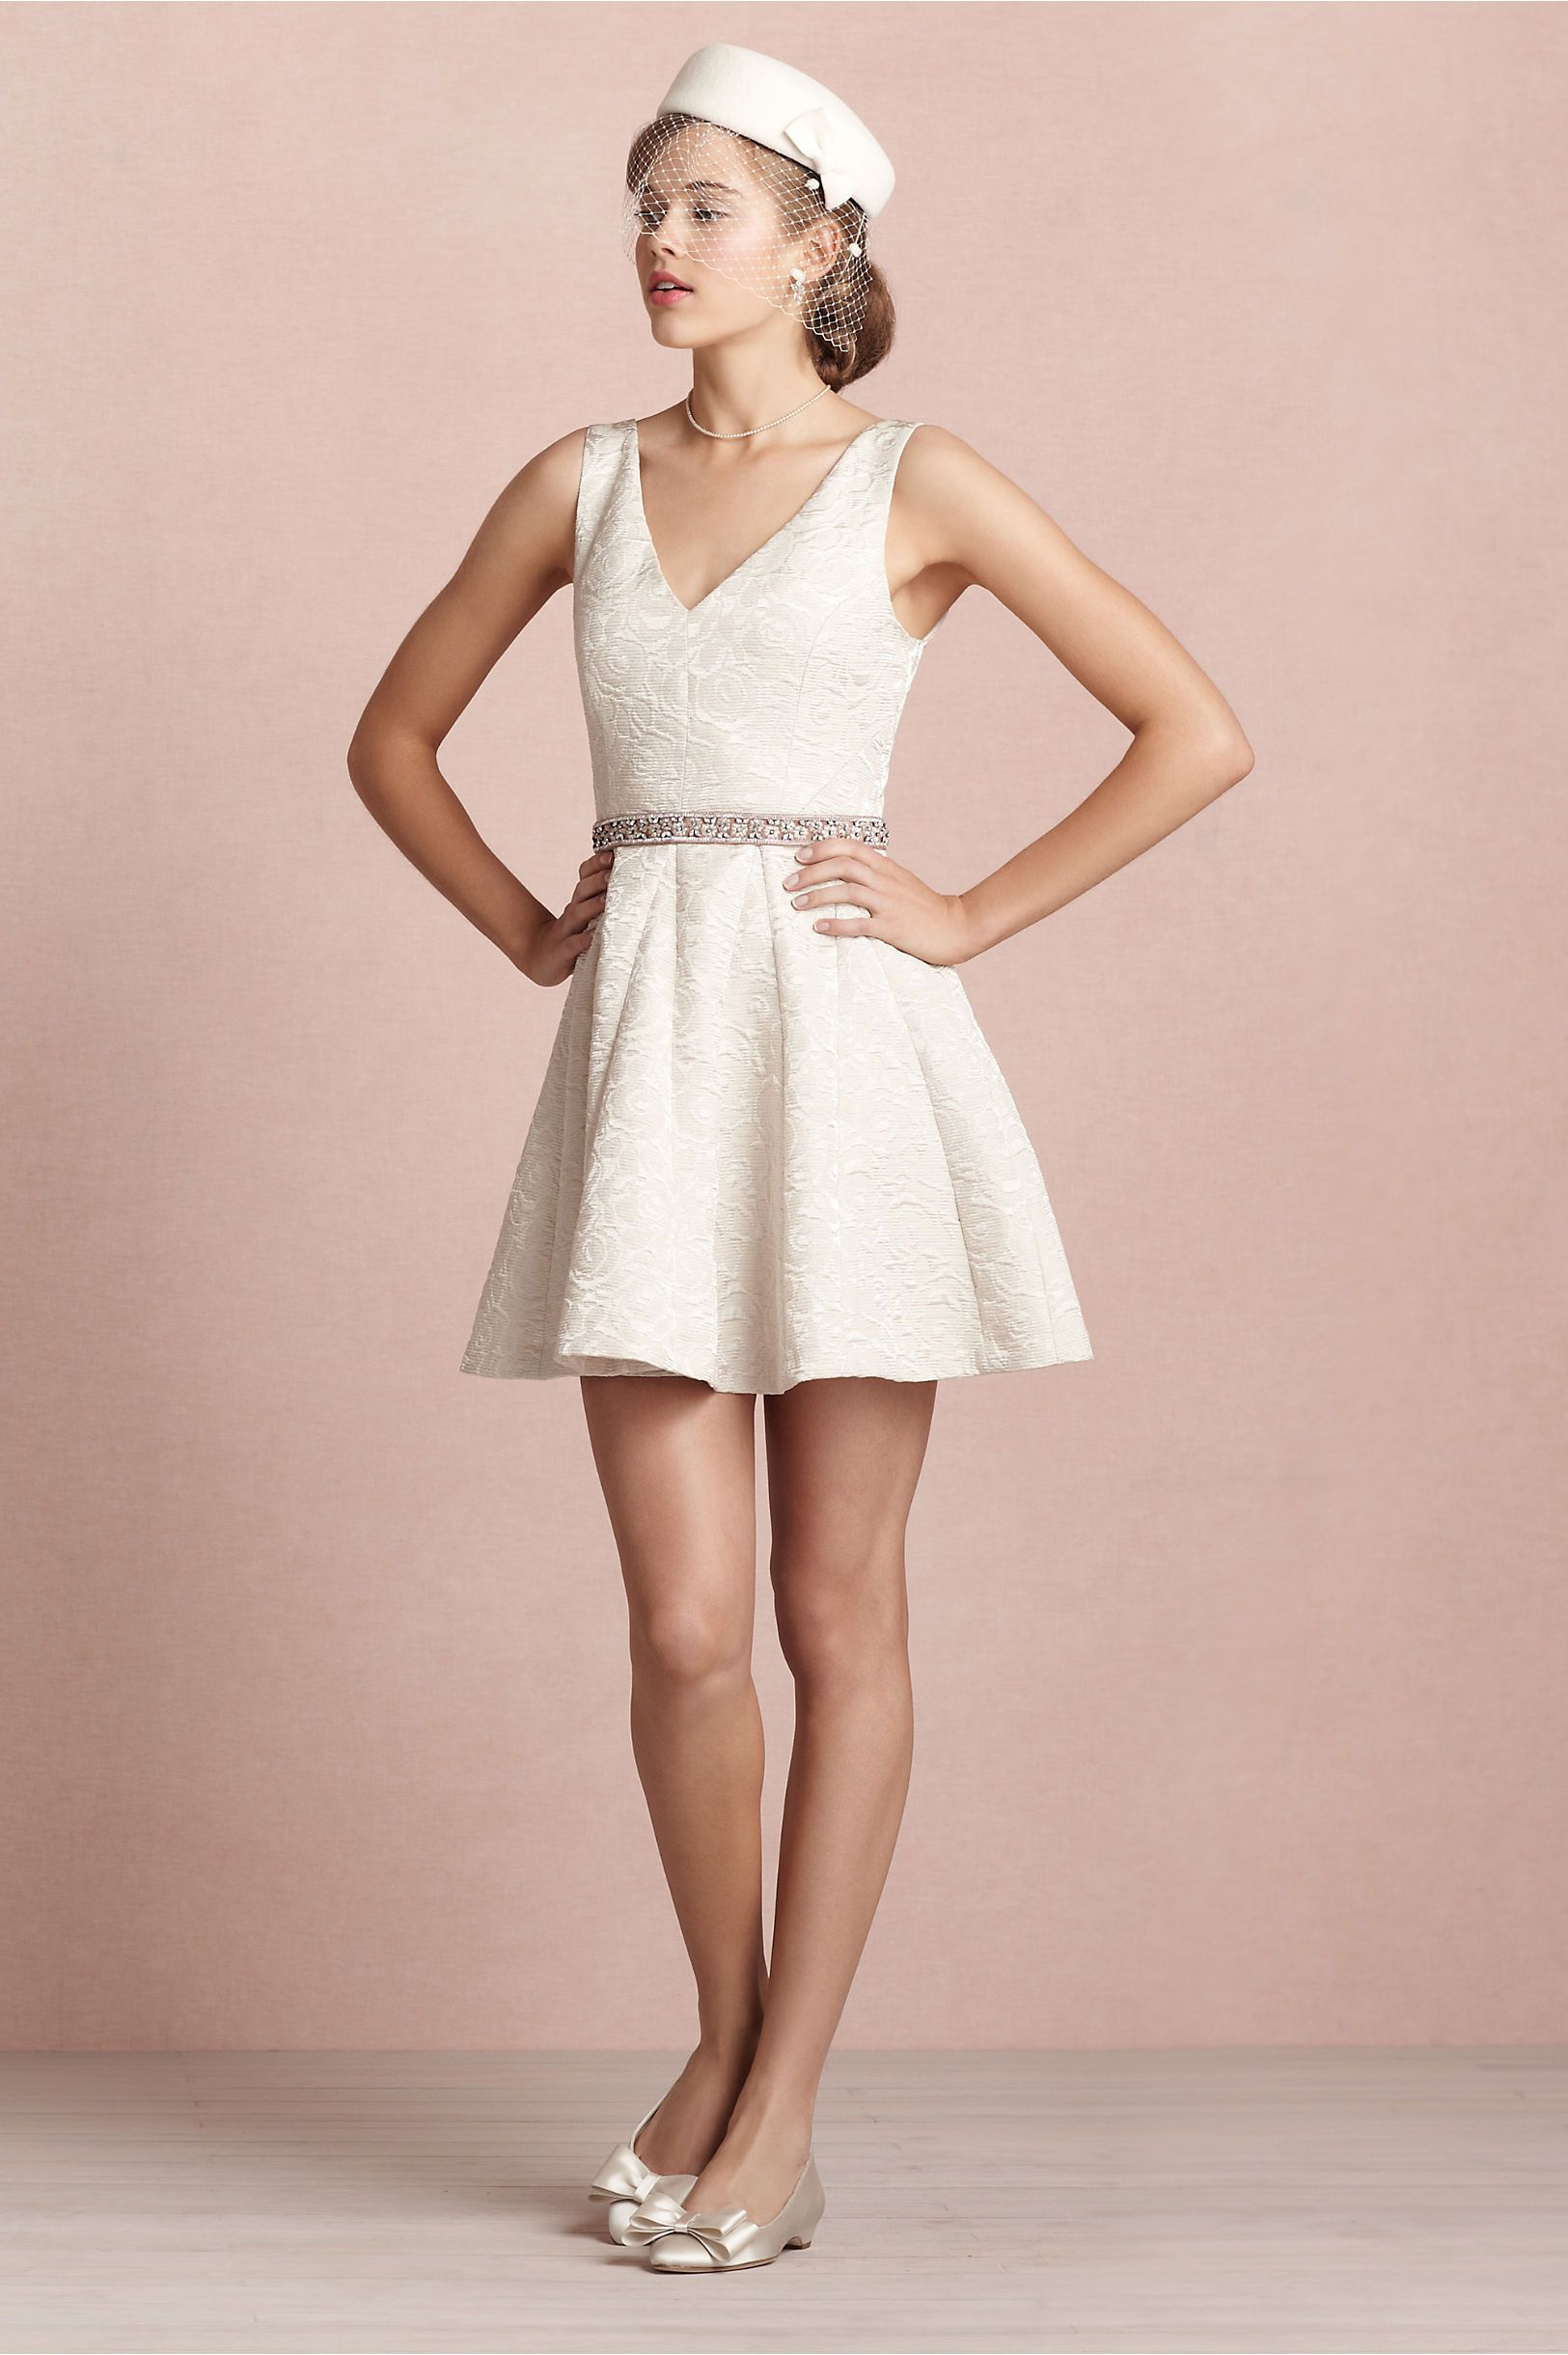 Frost Flower Dress in SHOP Bridesmaids & Partygoers Dresses at BHLDN ...